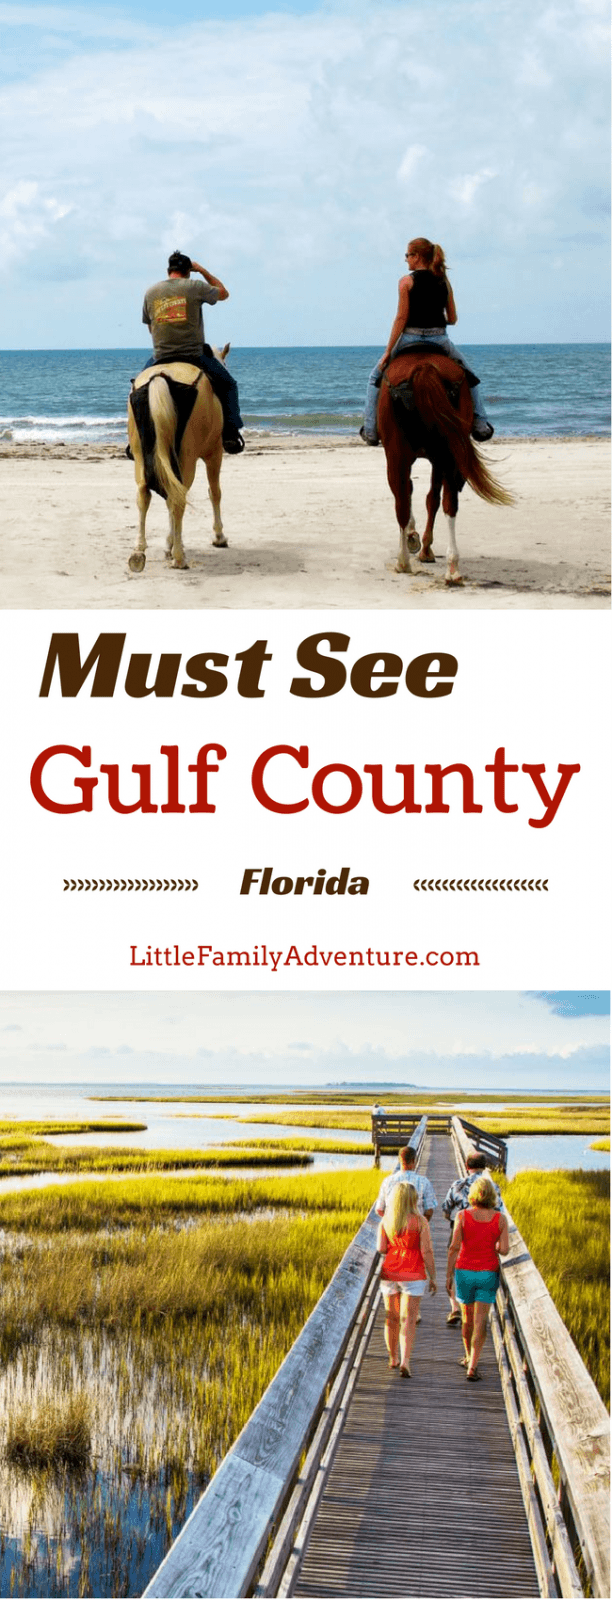 Must See Travel Spots: Gulf County, FL - Scuba Diving over 200 artificial reefs, dive sites, and wrecks